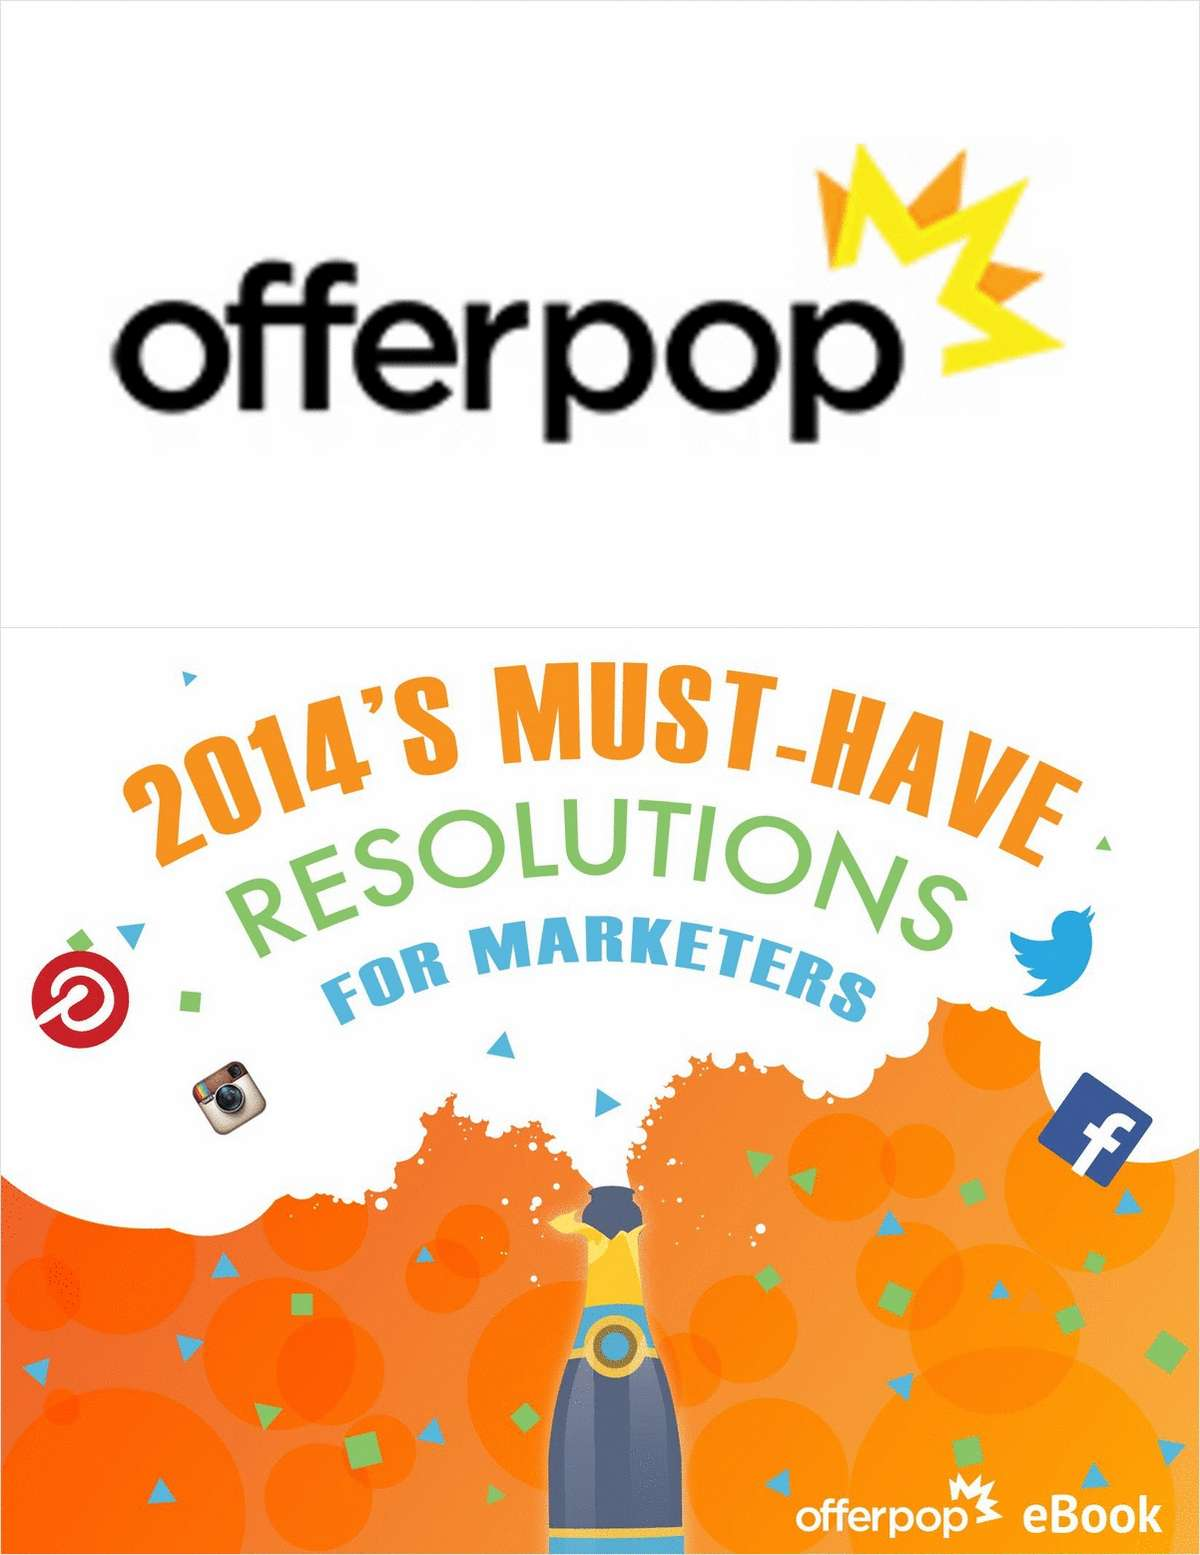 2014's Must-Have Resolutions for Marketers